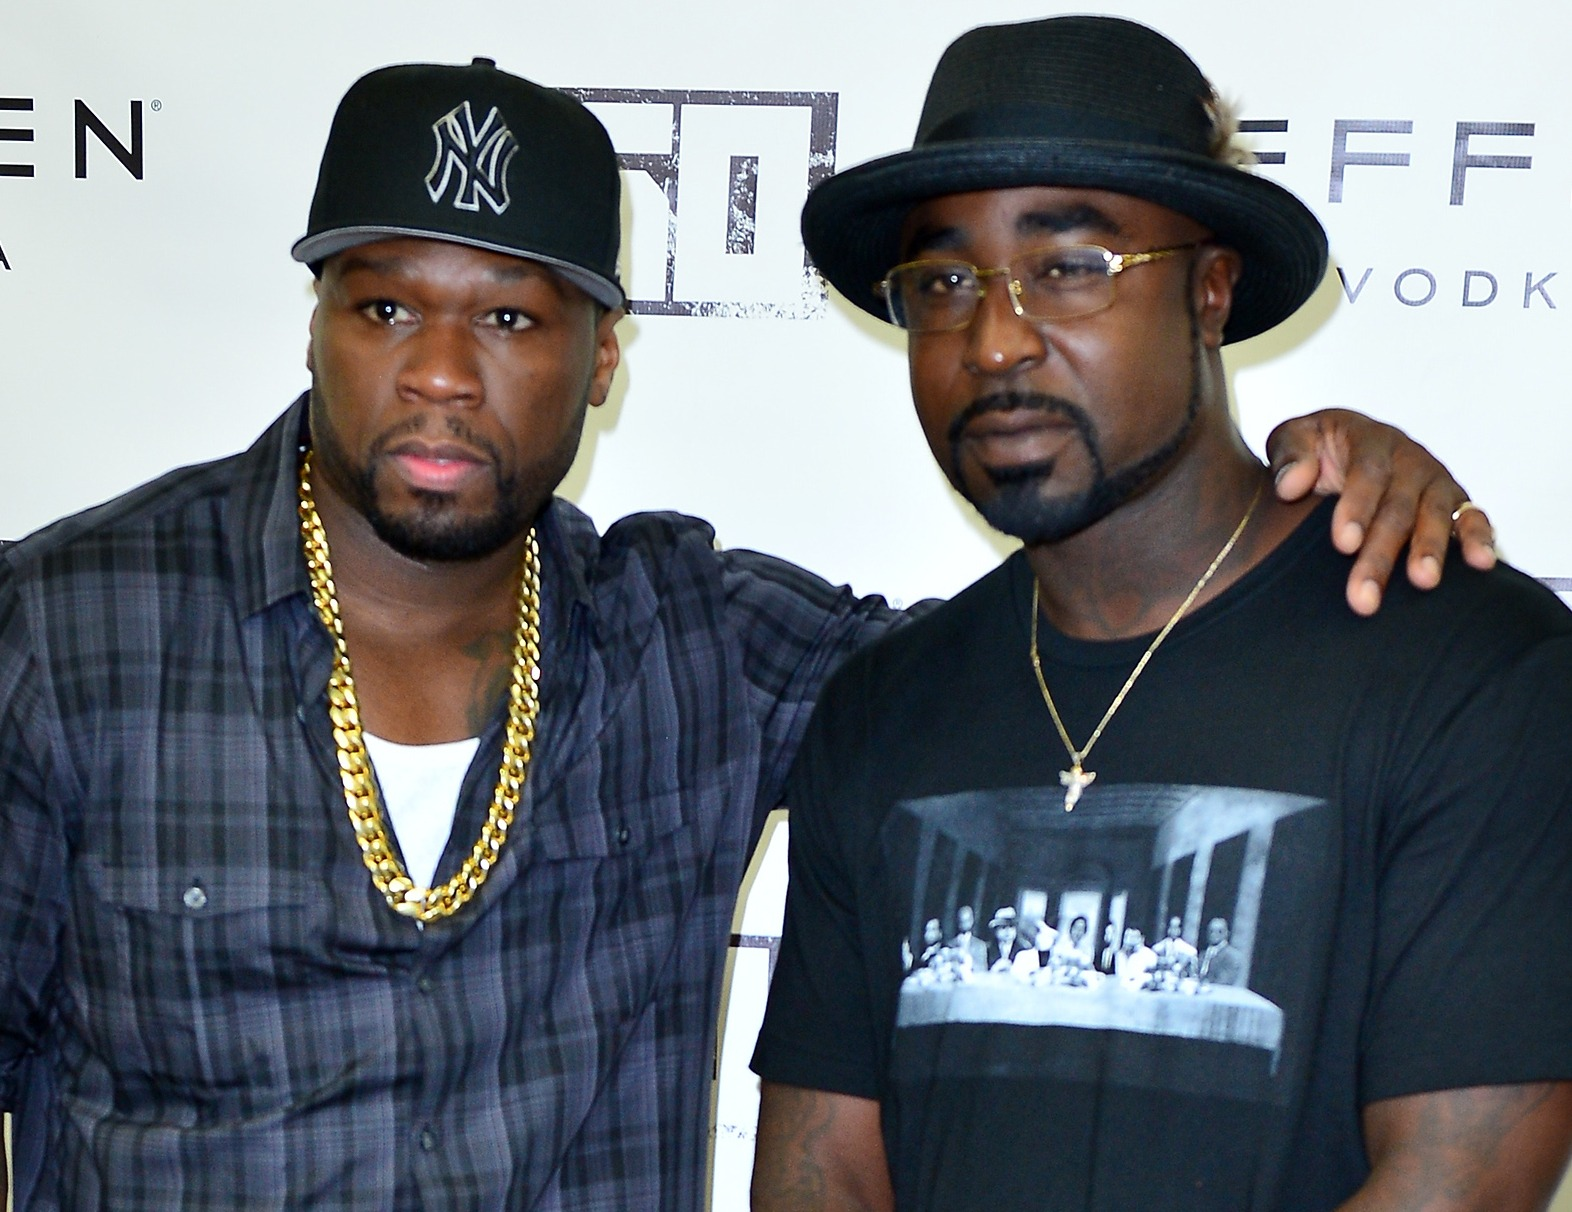 50 Cent Gets Young Buck's New Video Taken Down; Young Buck Promises More Music